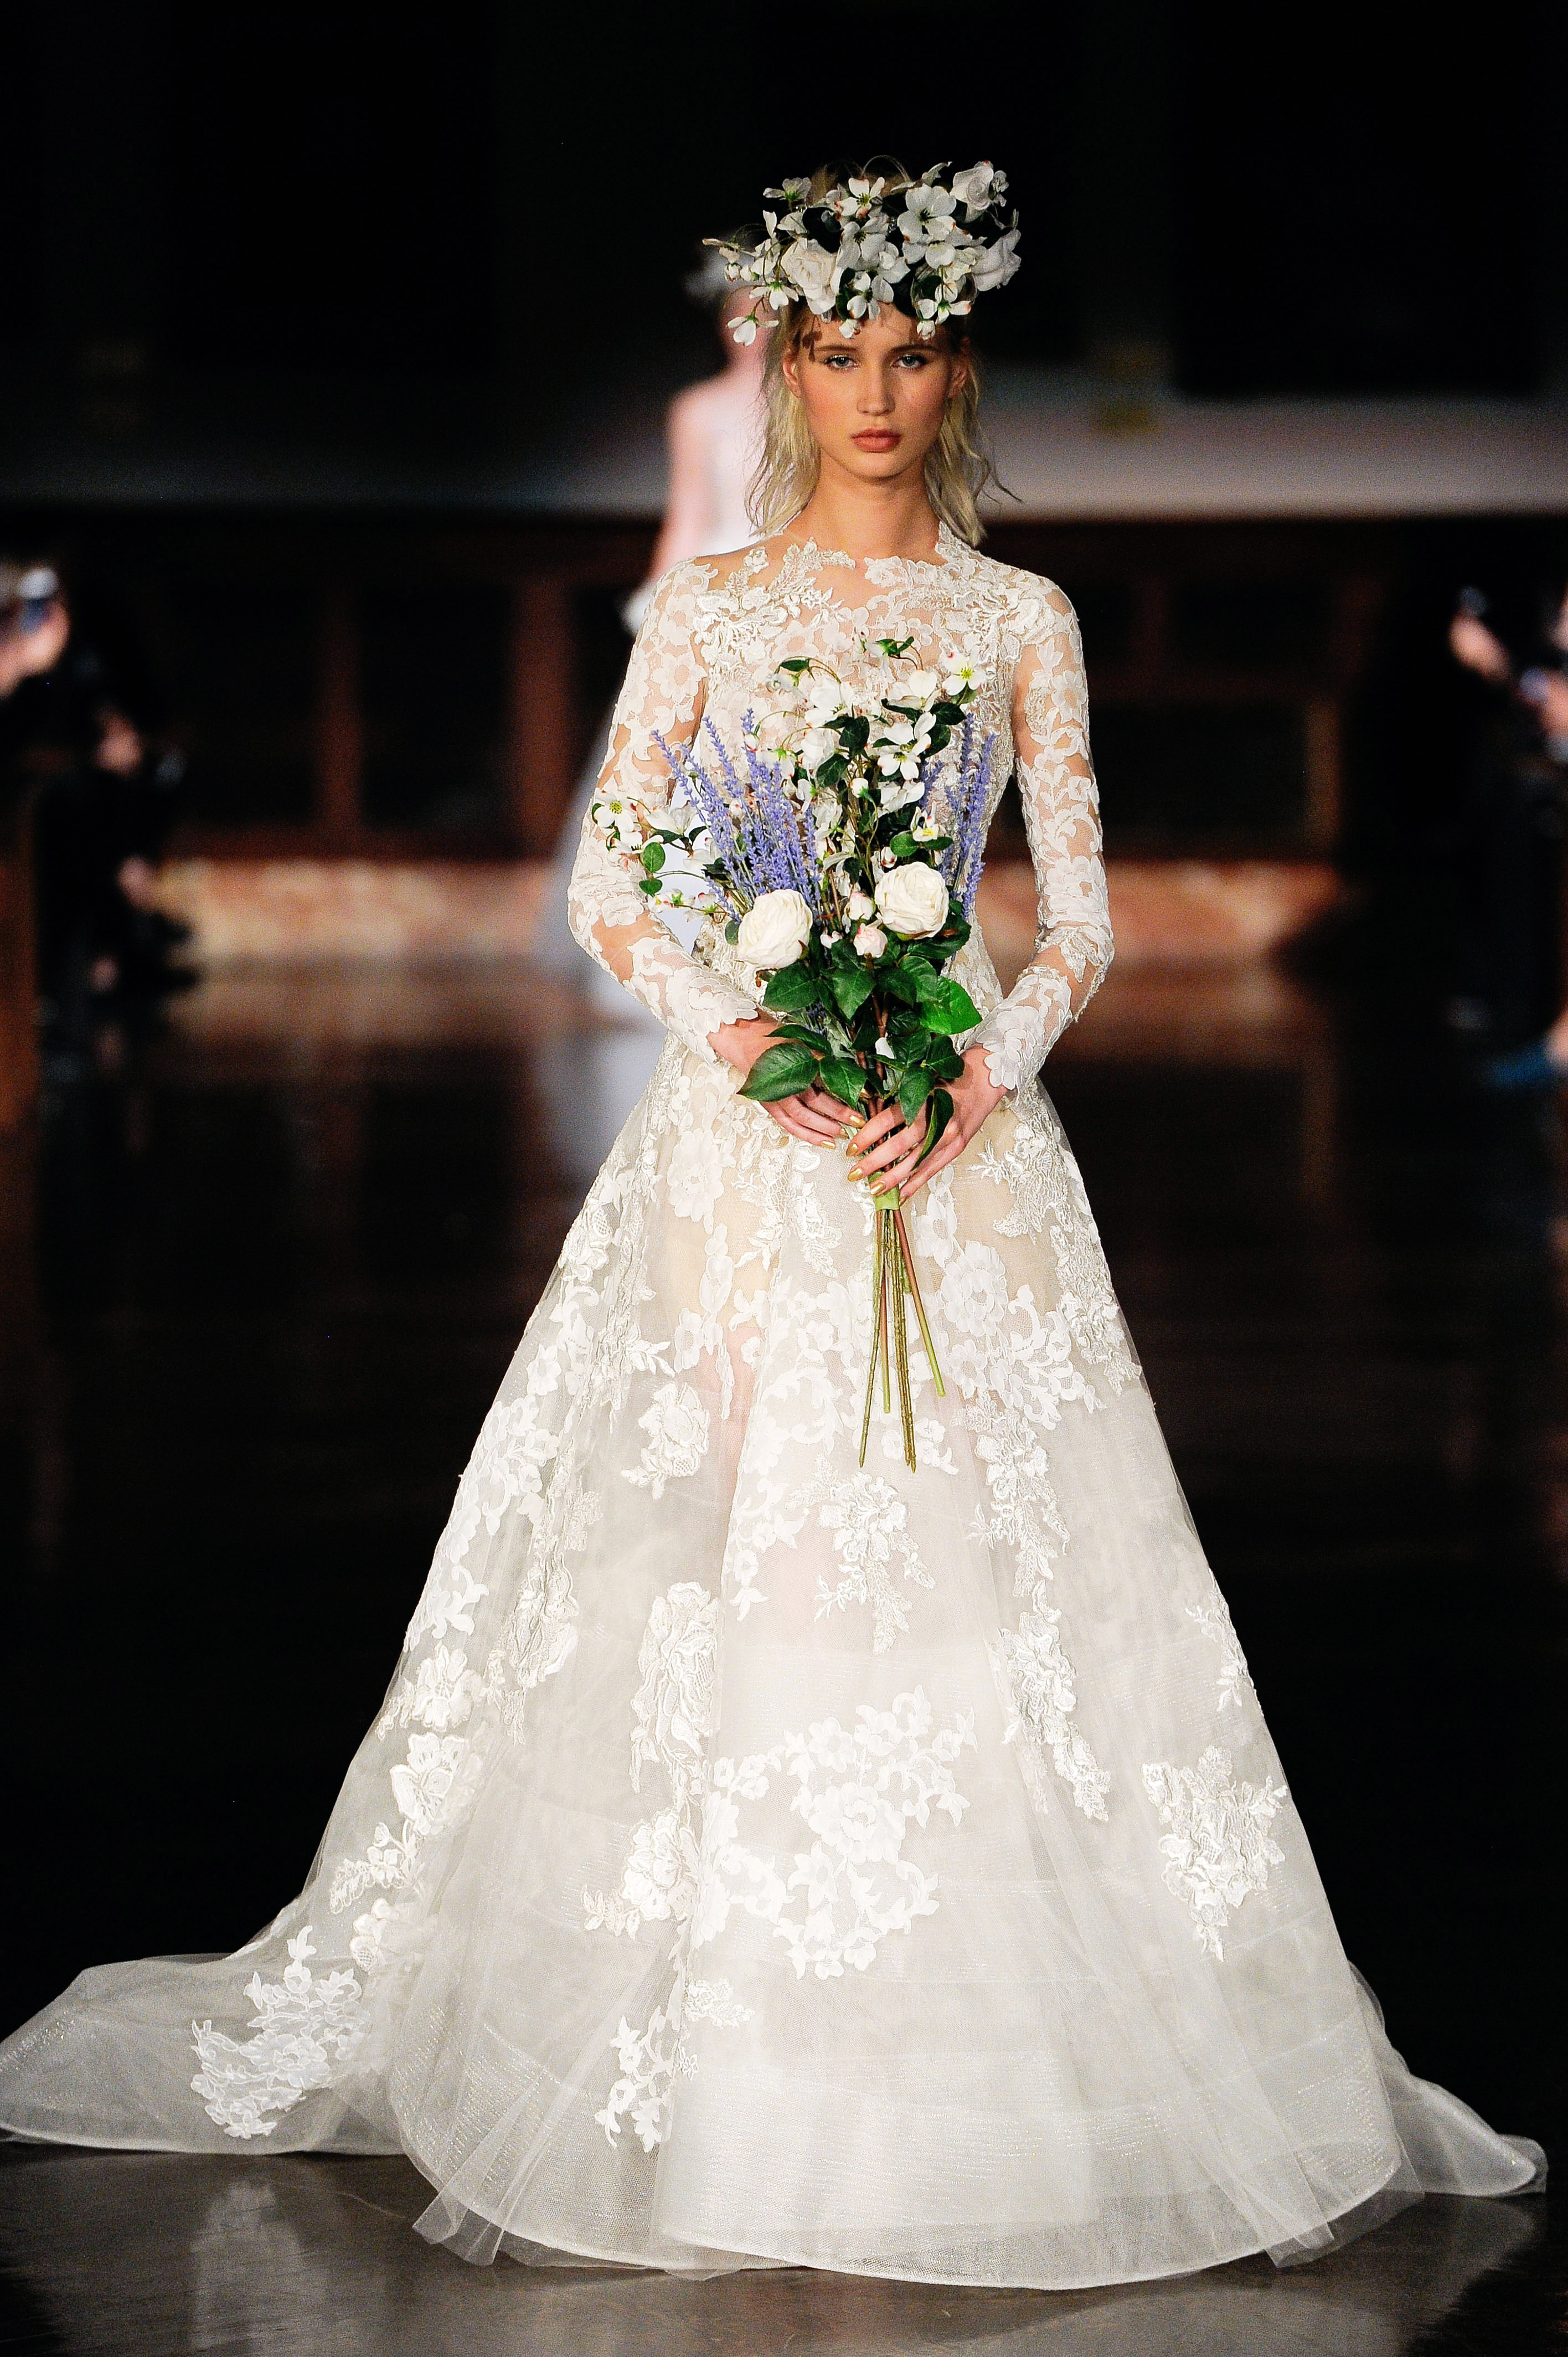 reem acra wedding dress spring 2019 long sleeves lace a-line